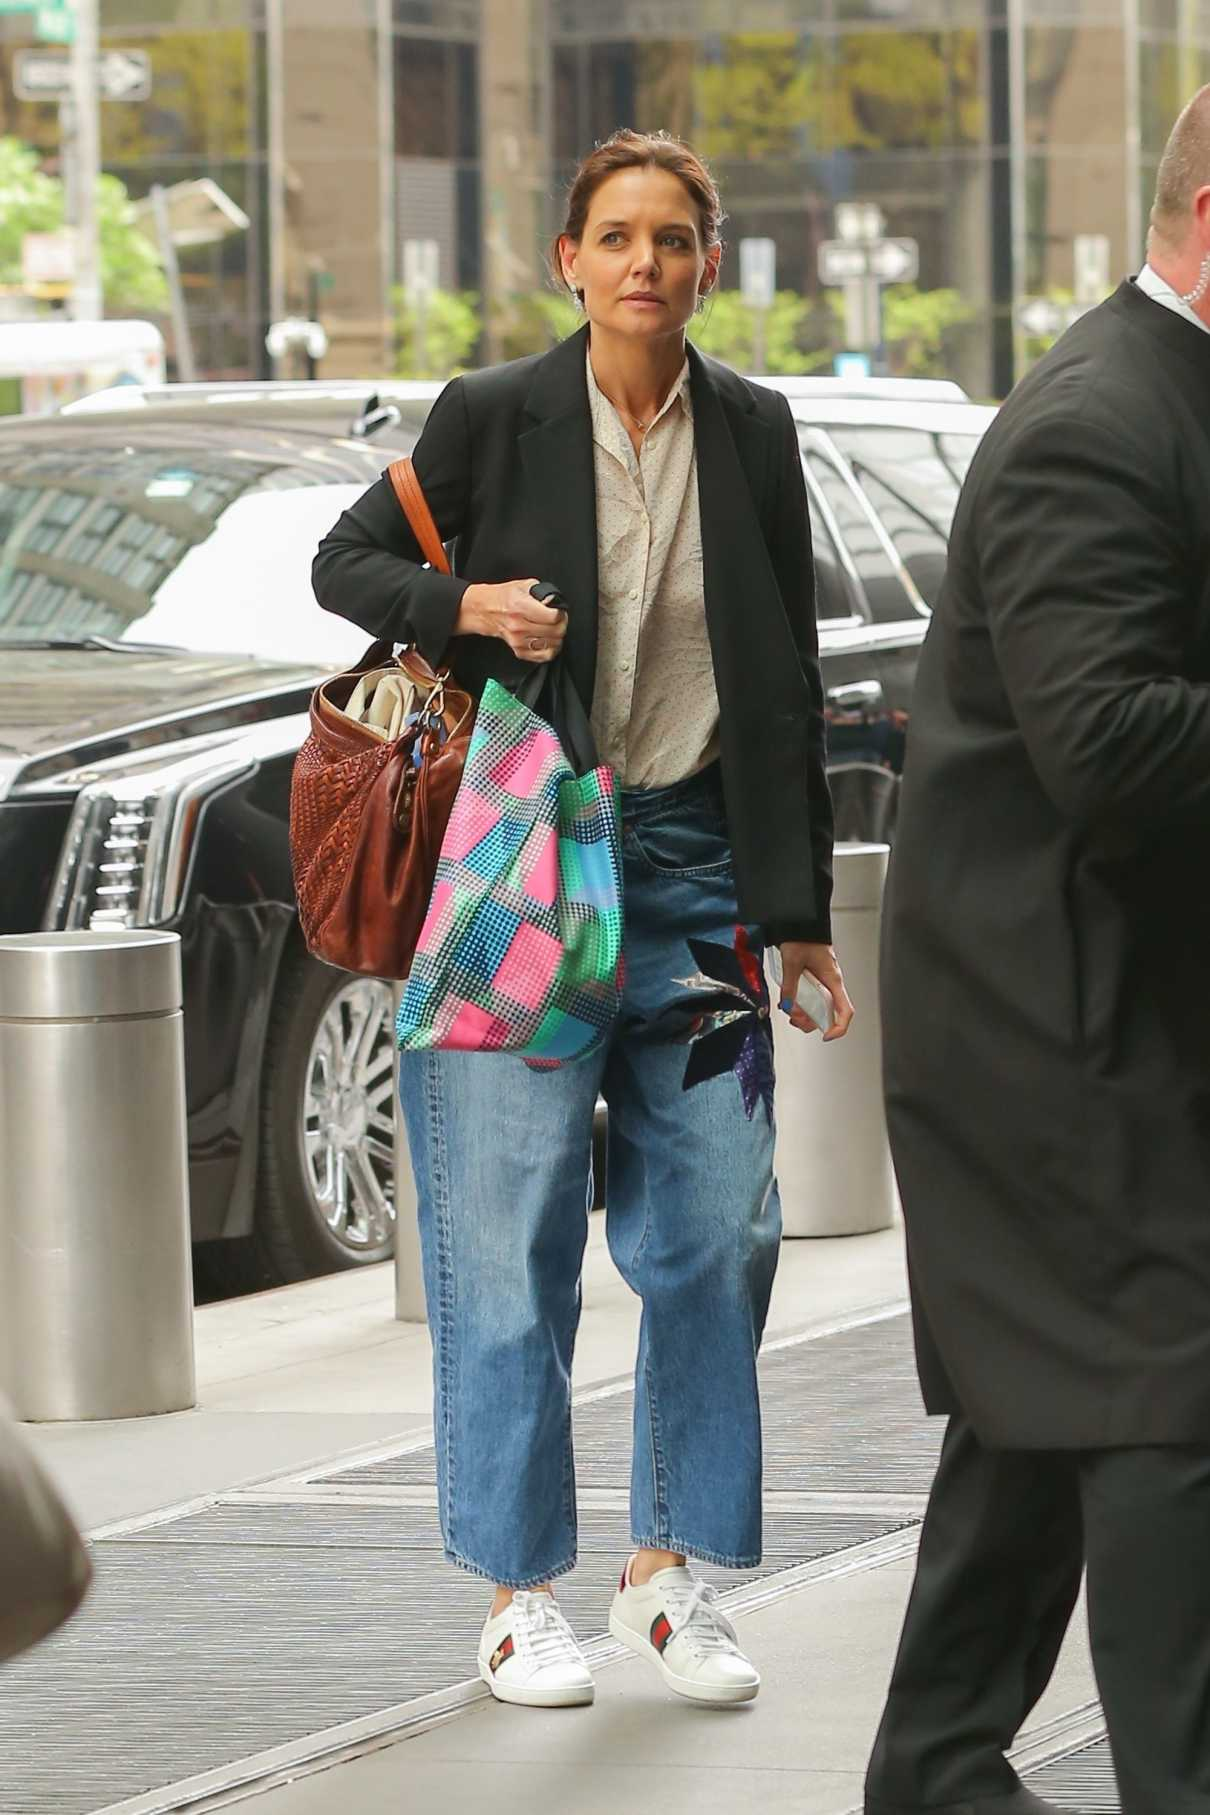 Katie Holmes In A White Sneakers Arrives At Her Apartment New York City 04 25 2019